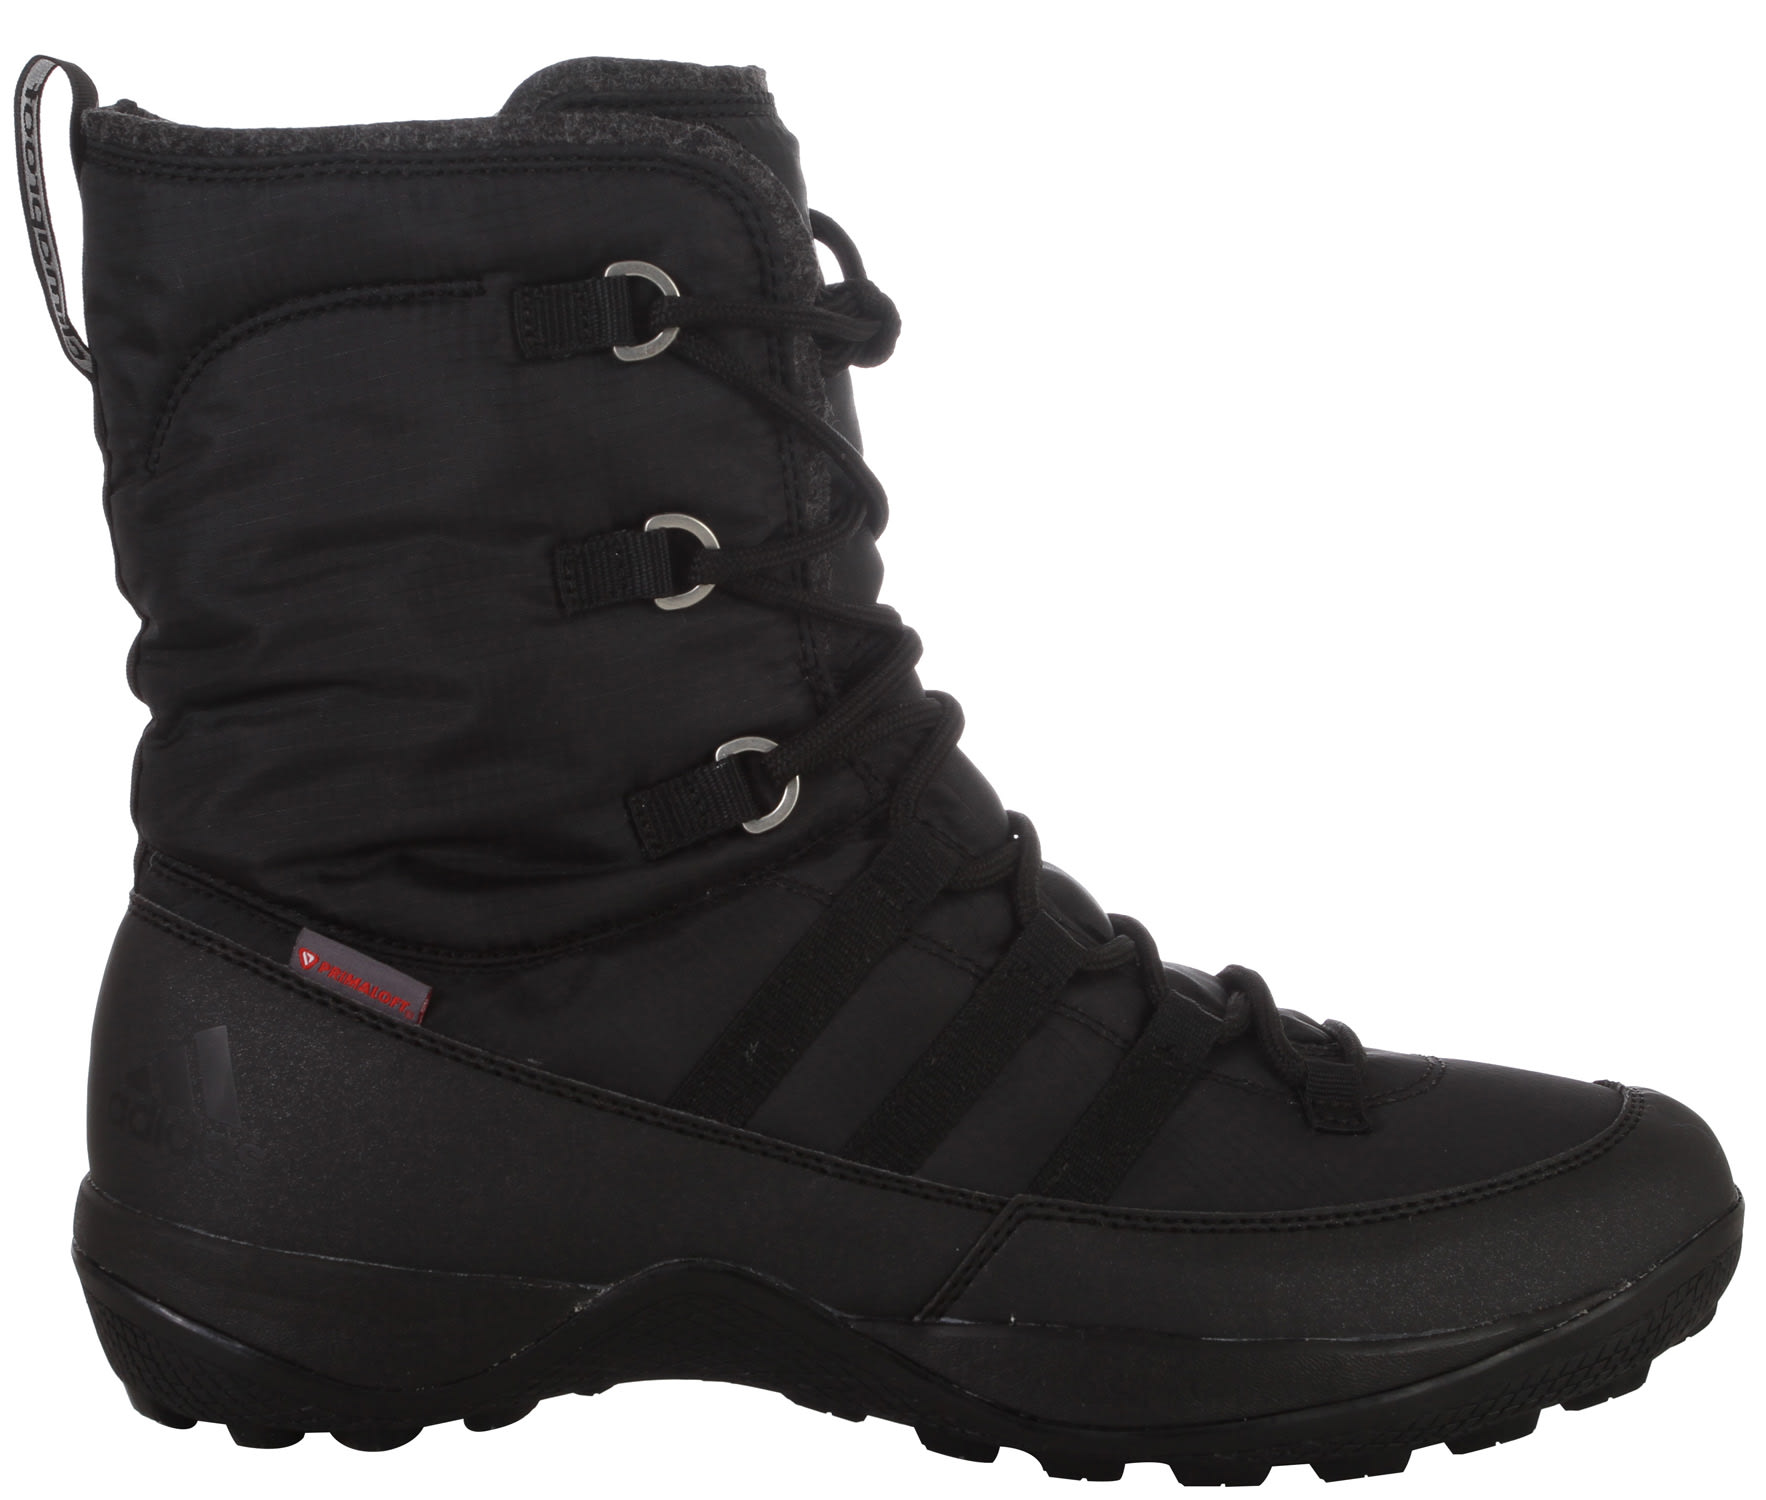 On Sale Womens Casual Boots - Snow Boots, Winter Boots